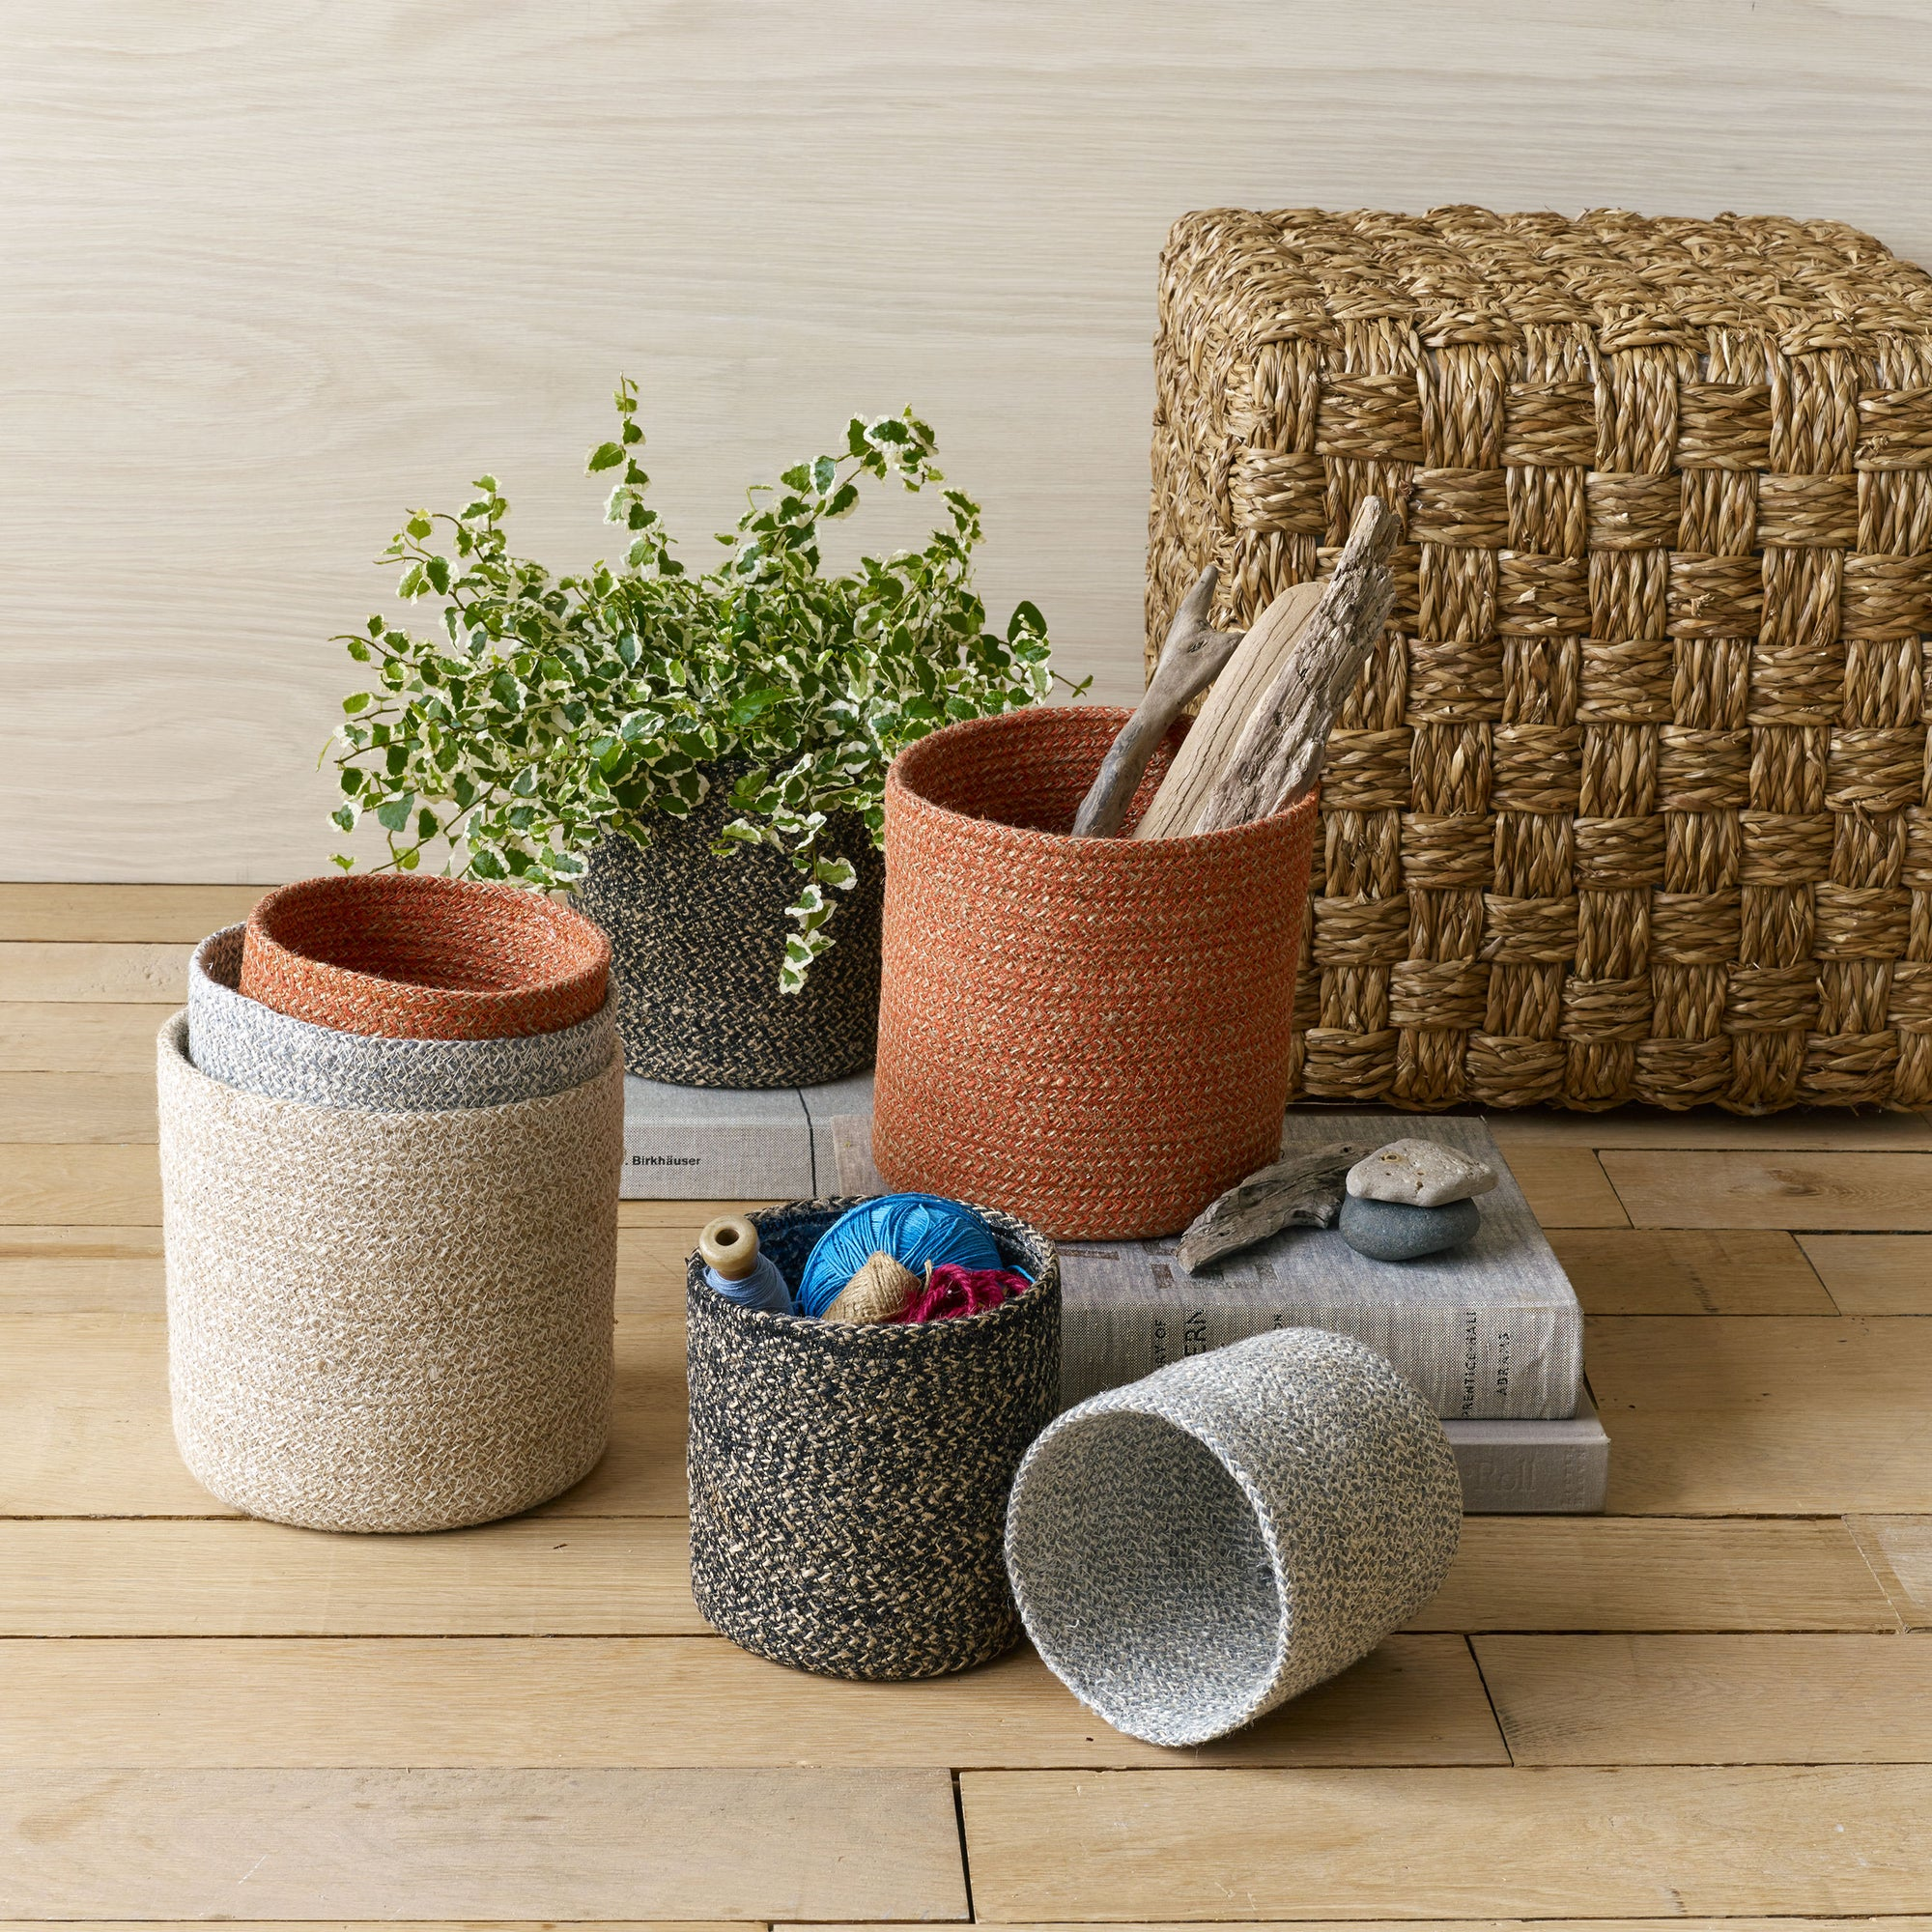 Melia Organizer Baskets Set of 4 in Black, Clay, Sand, and Slate